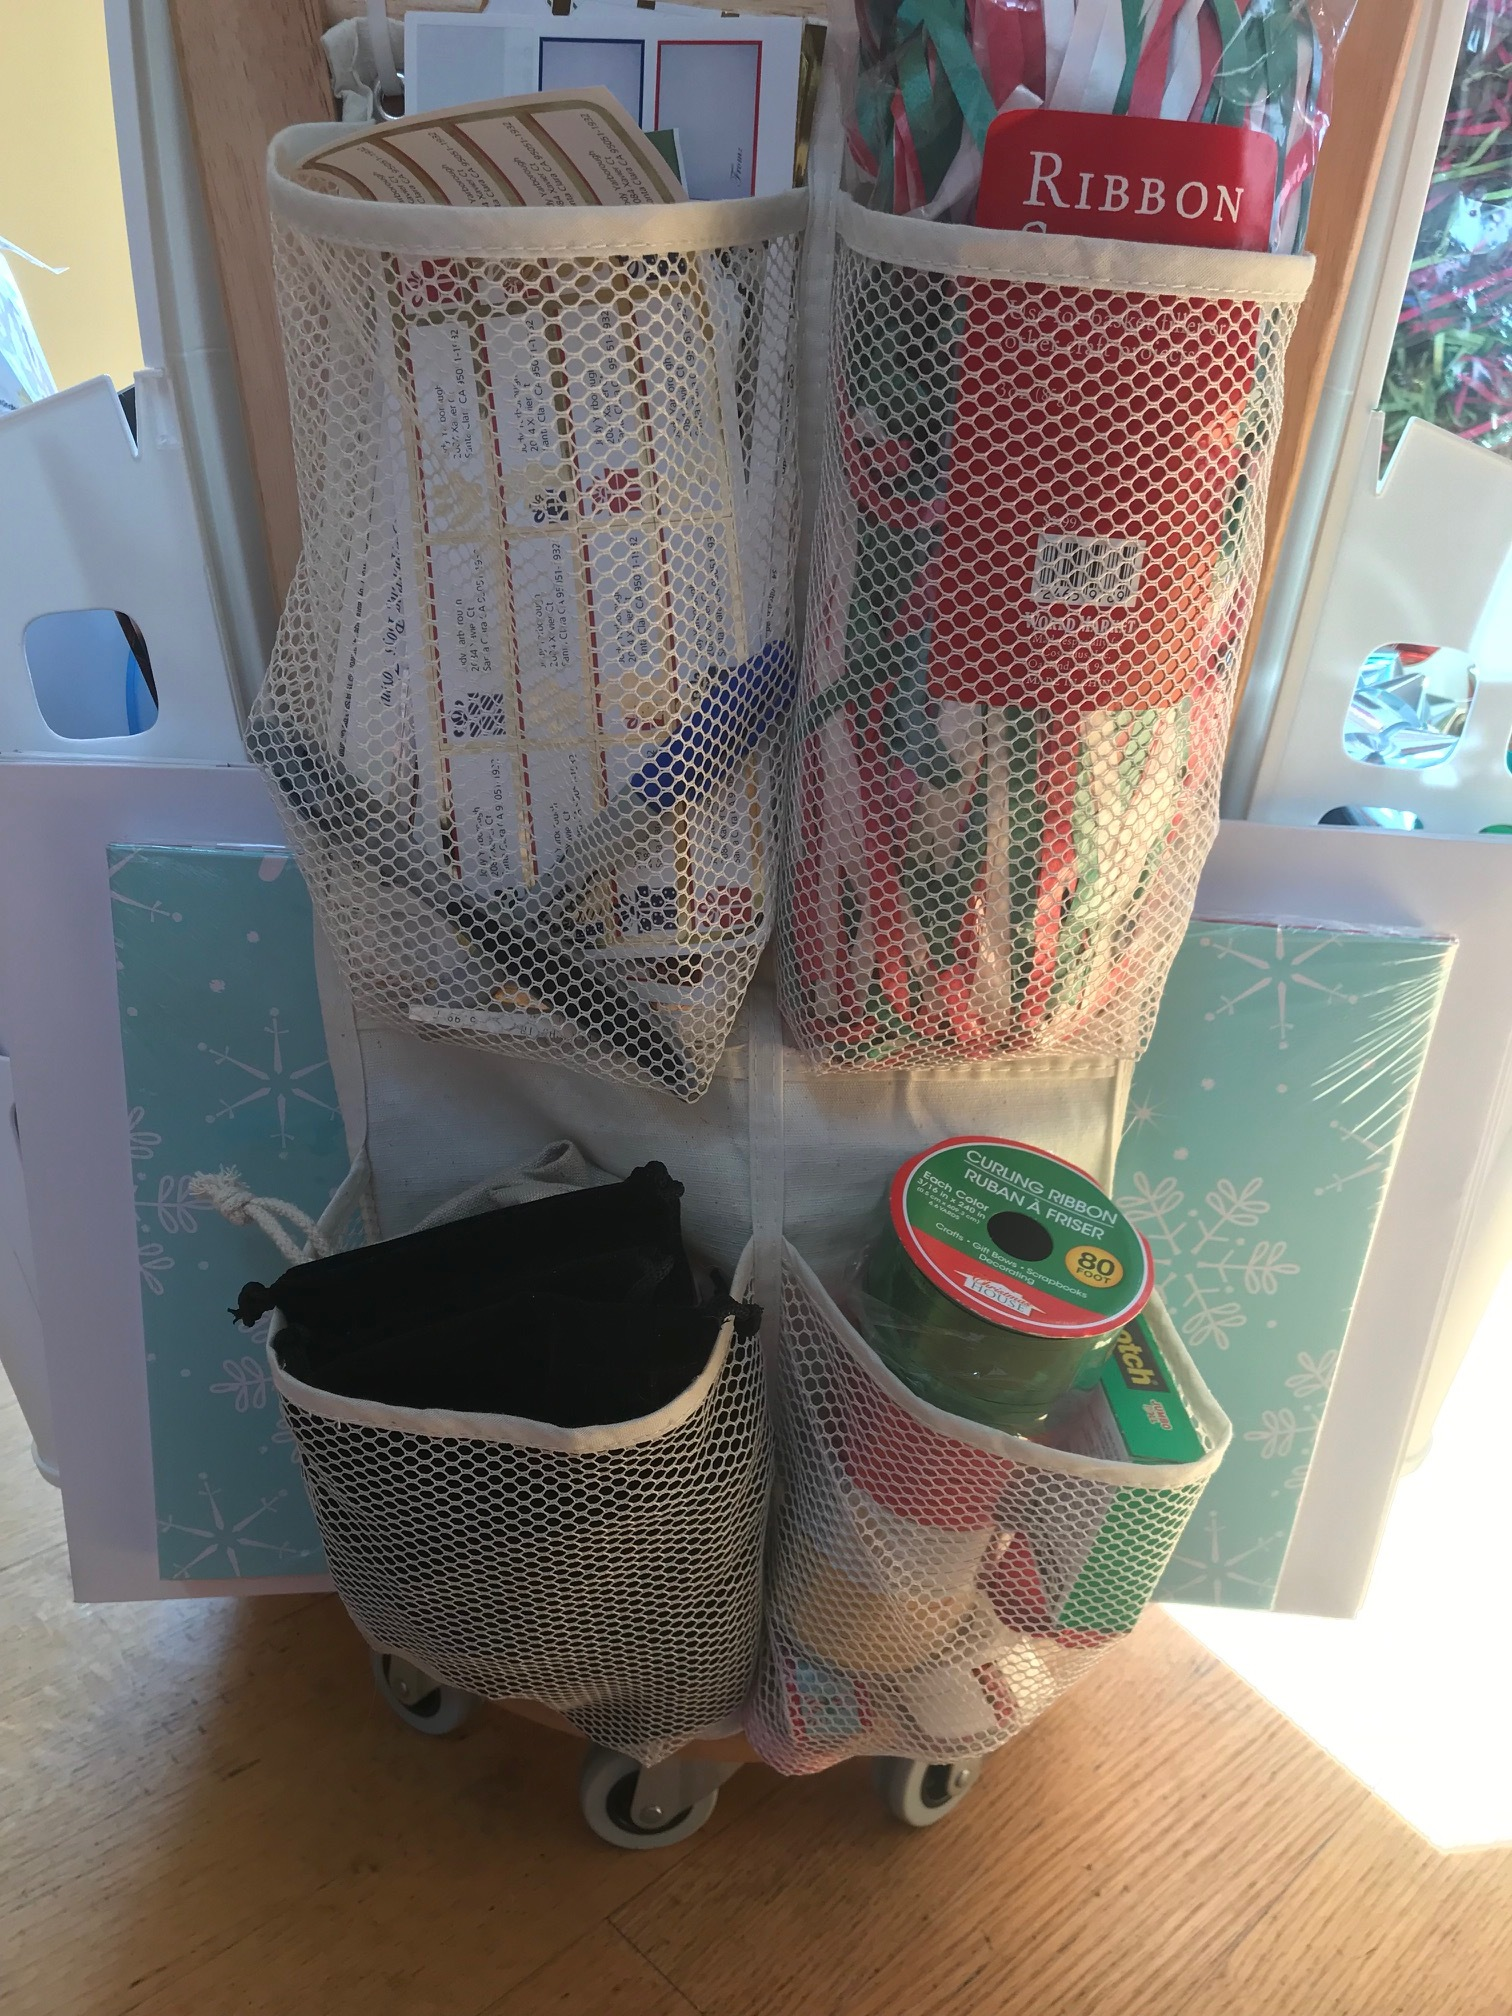 This side holds labels, extra supplies and other miscellaneous small items in mesh pockets of an over-the-door shoe organizer that I cut down to size.